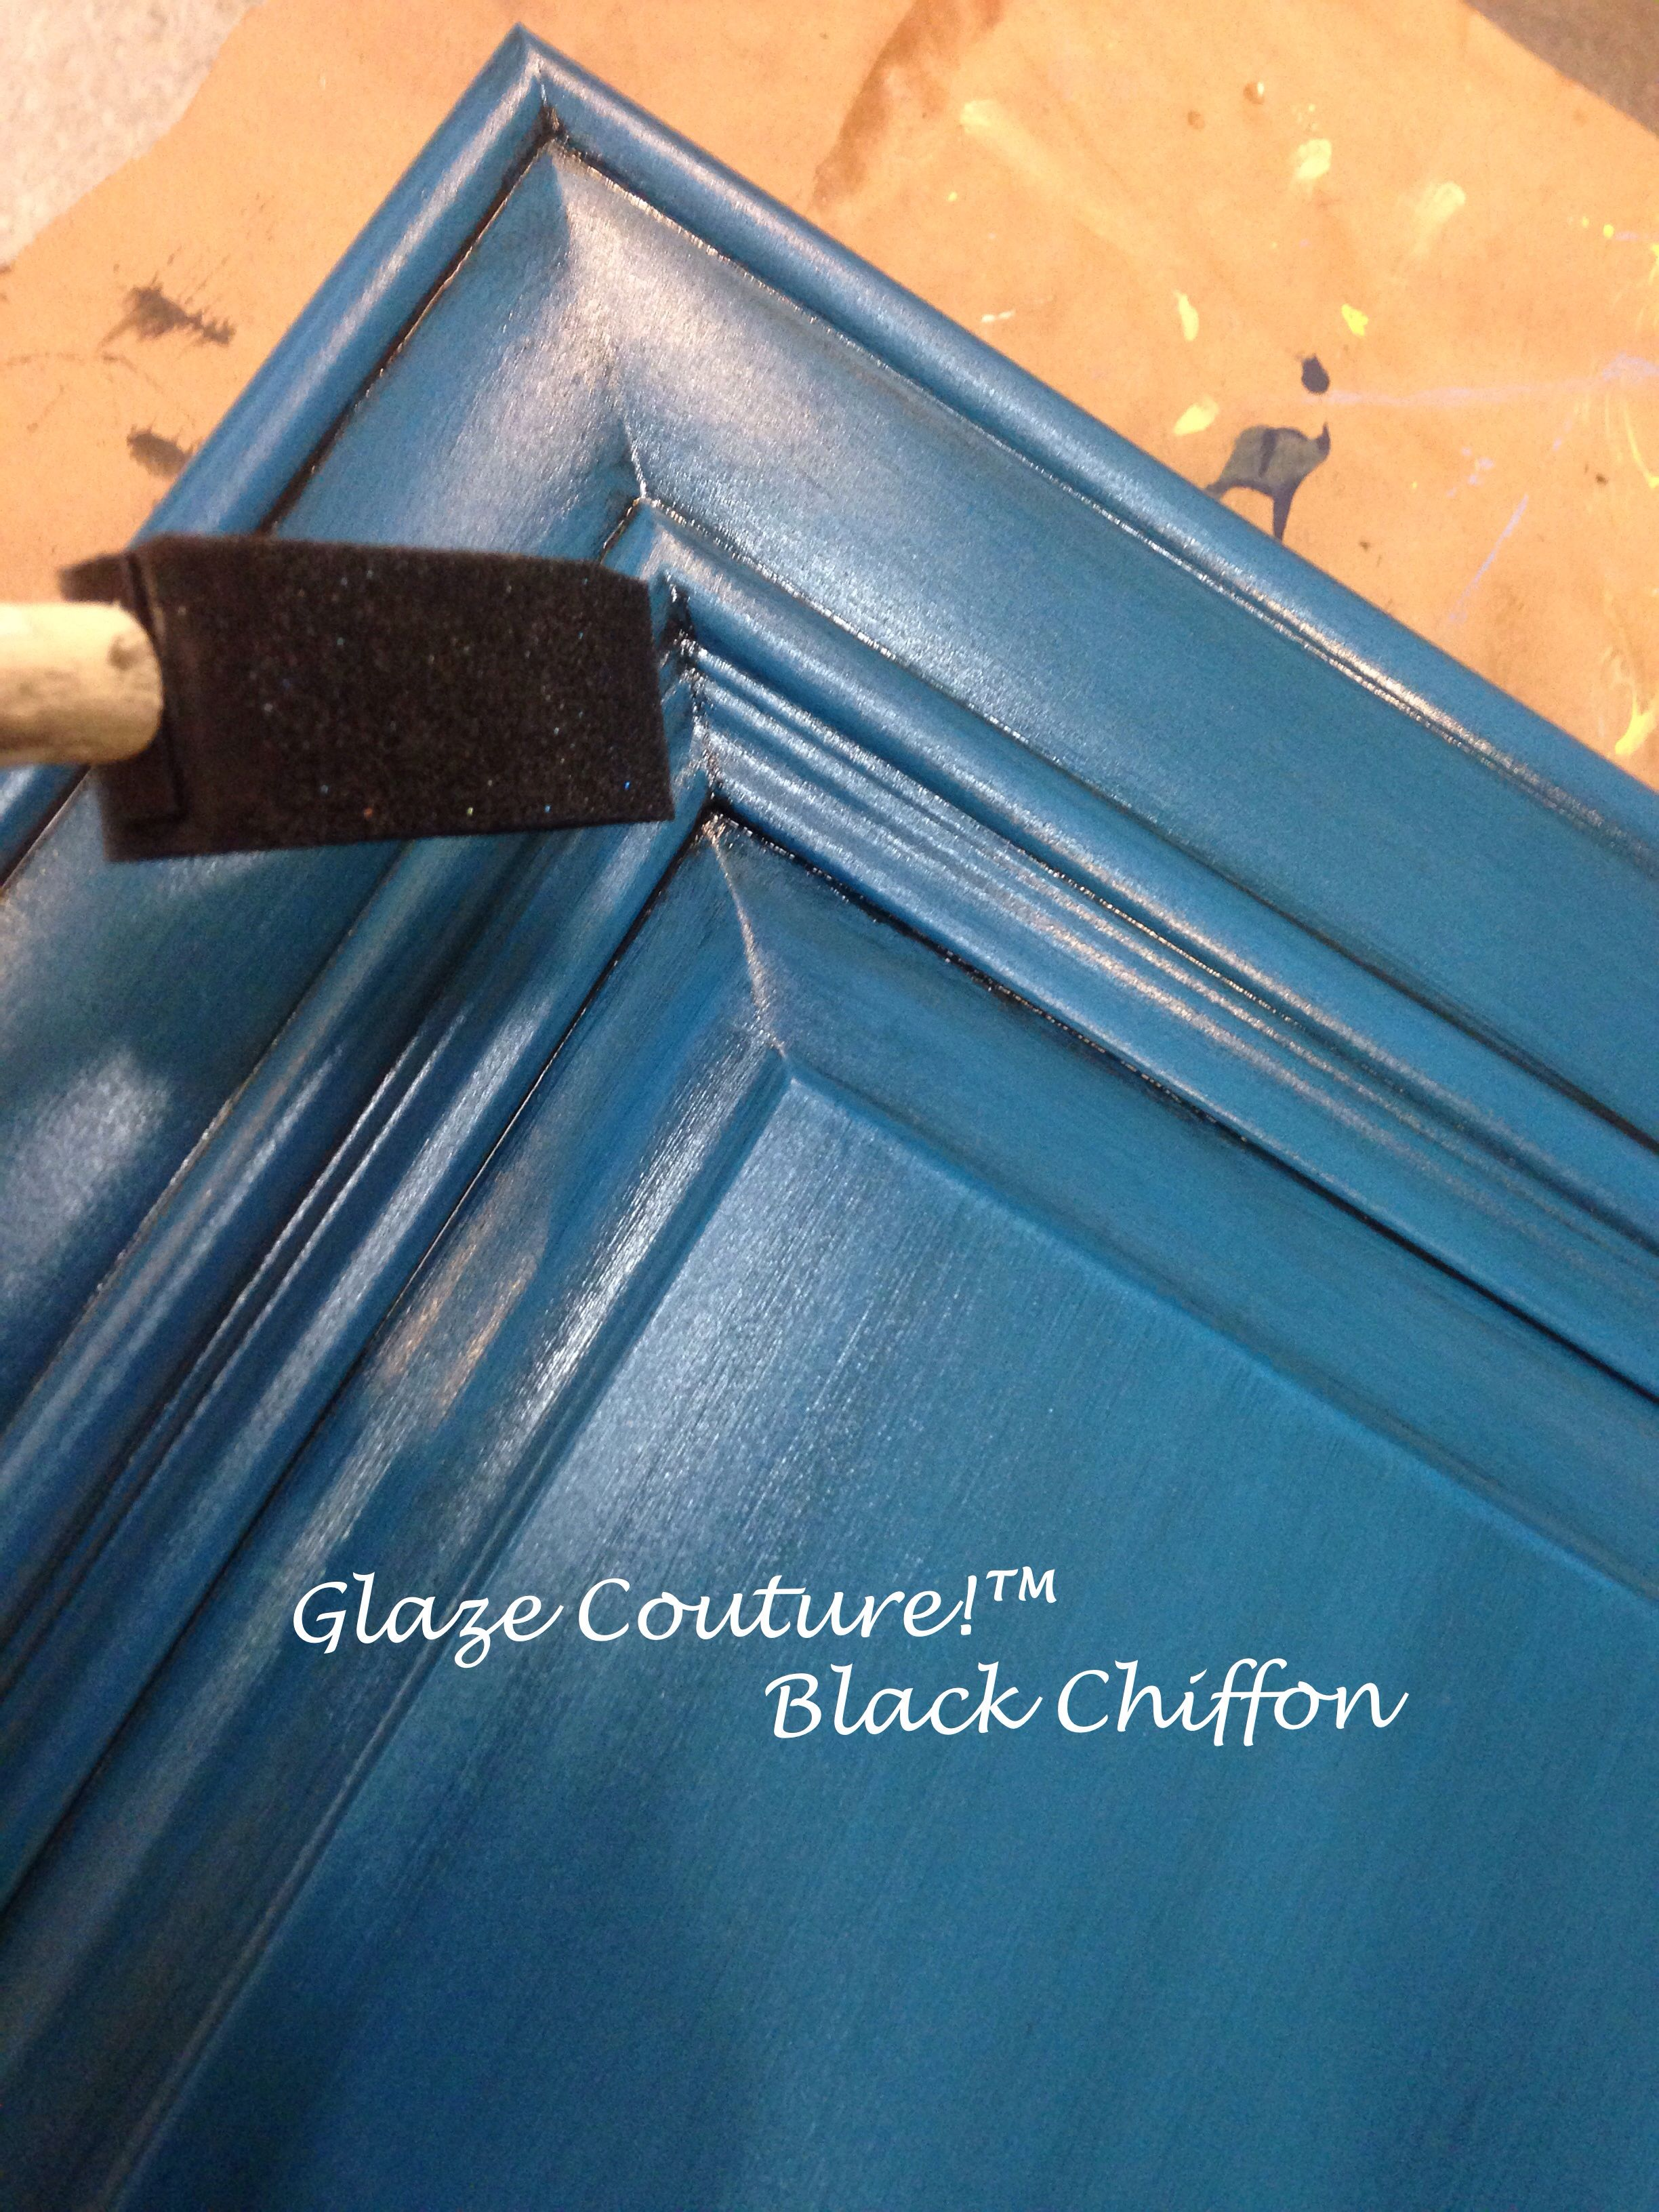 Glazing With Black Chiffon Over Lake Norman Signature Blue